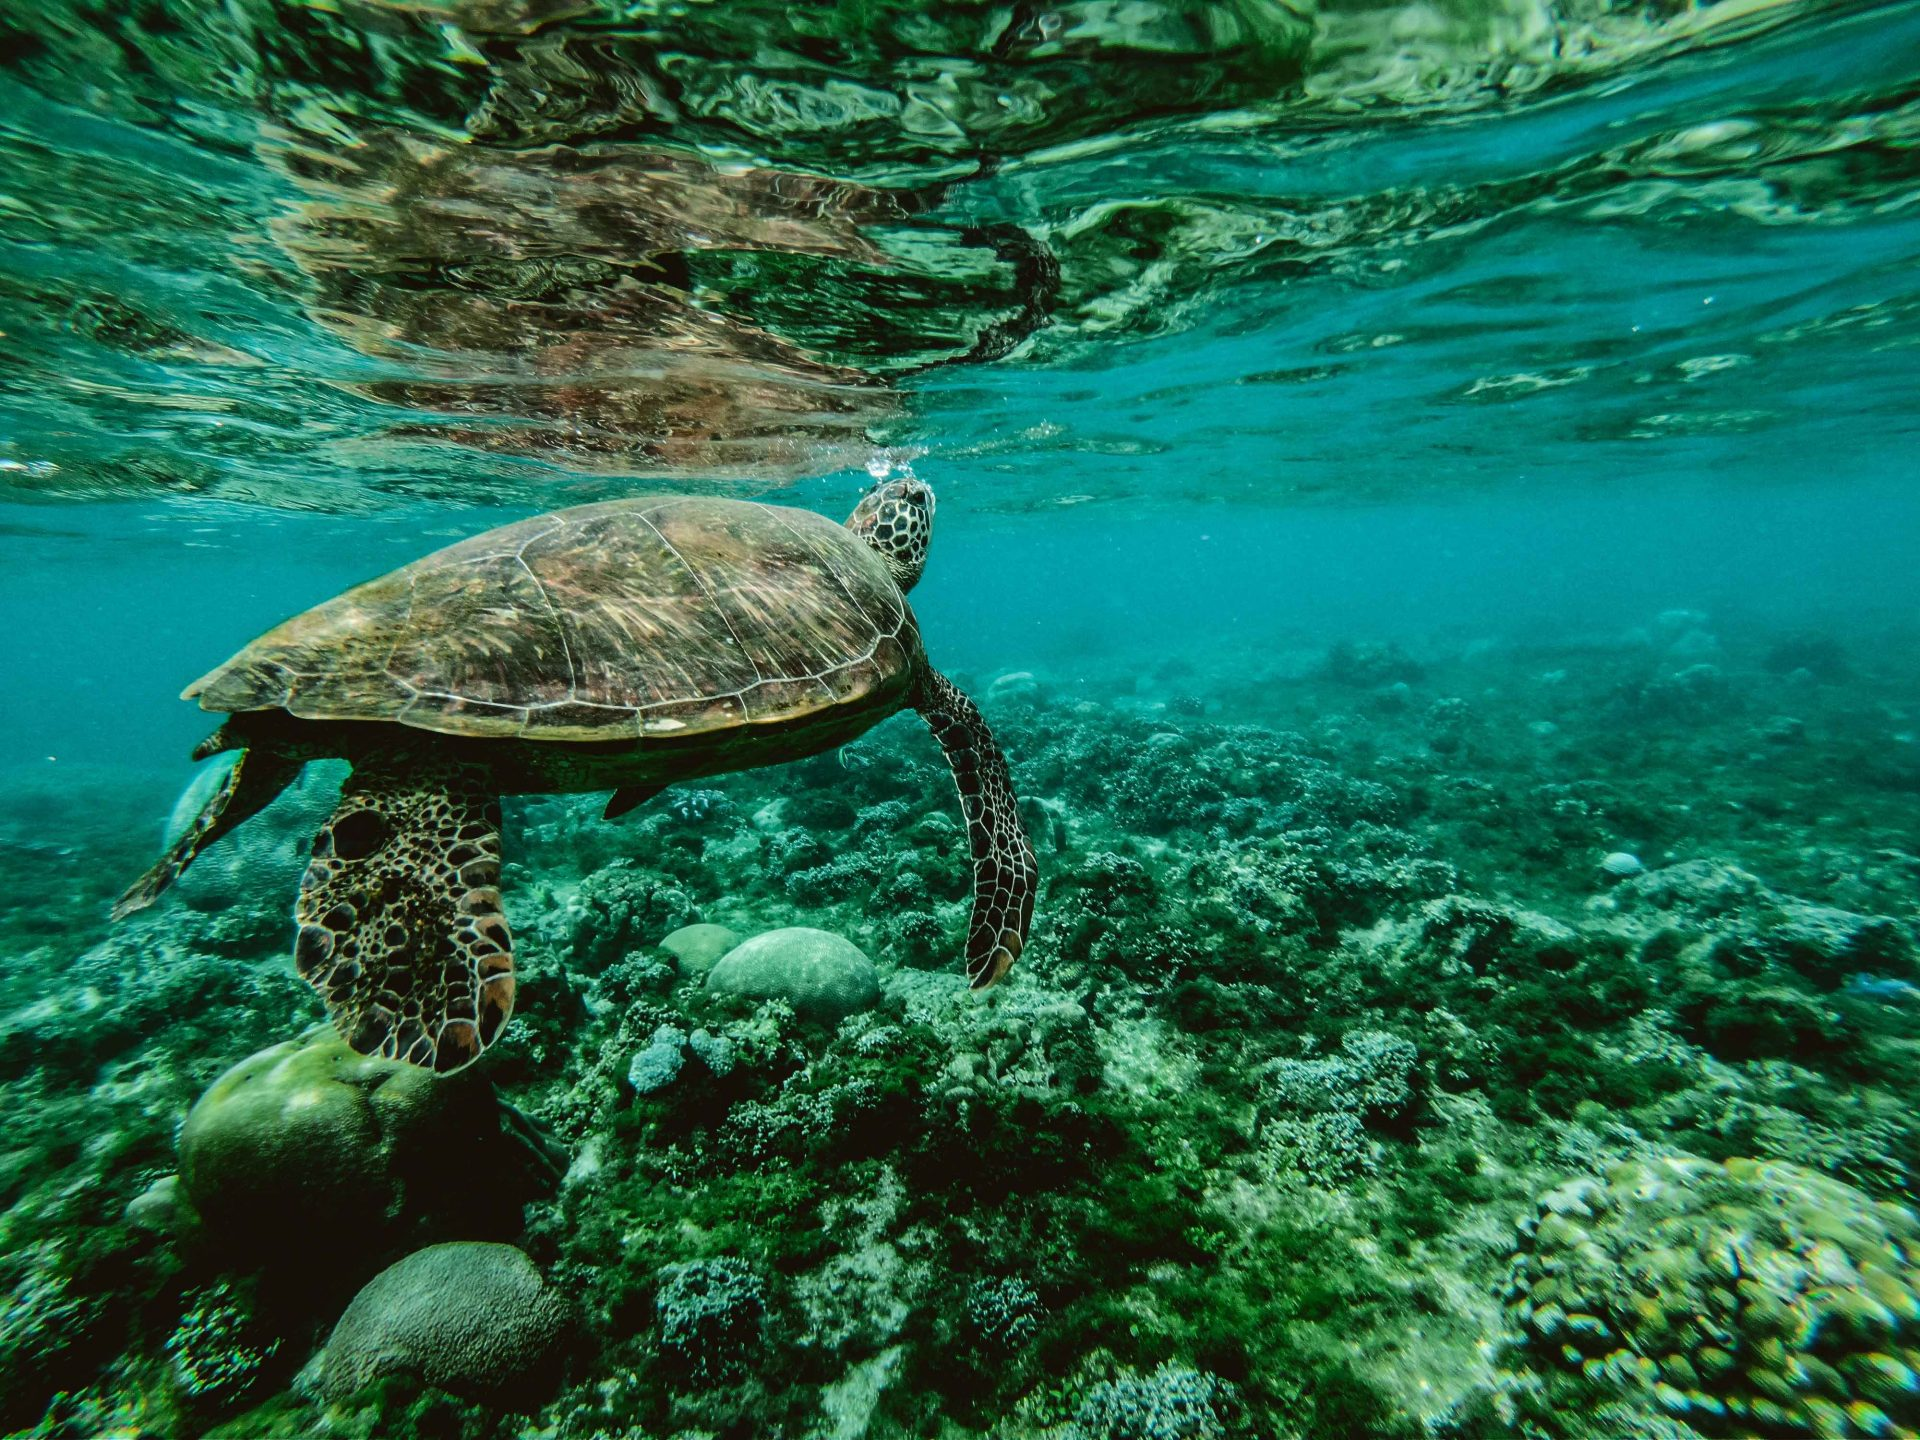 Travel to Australia - The Great Barrier Reef